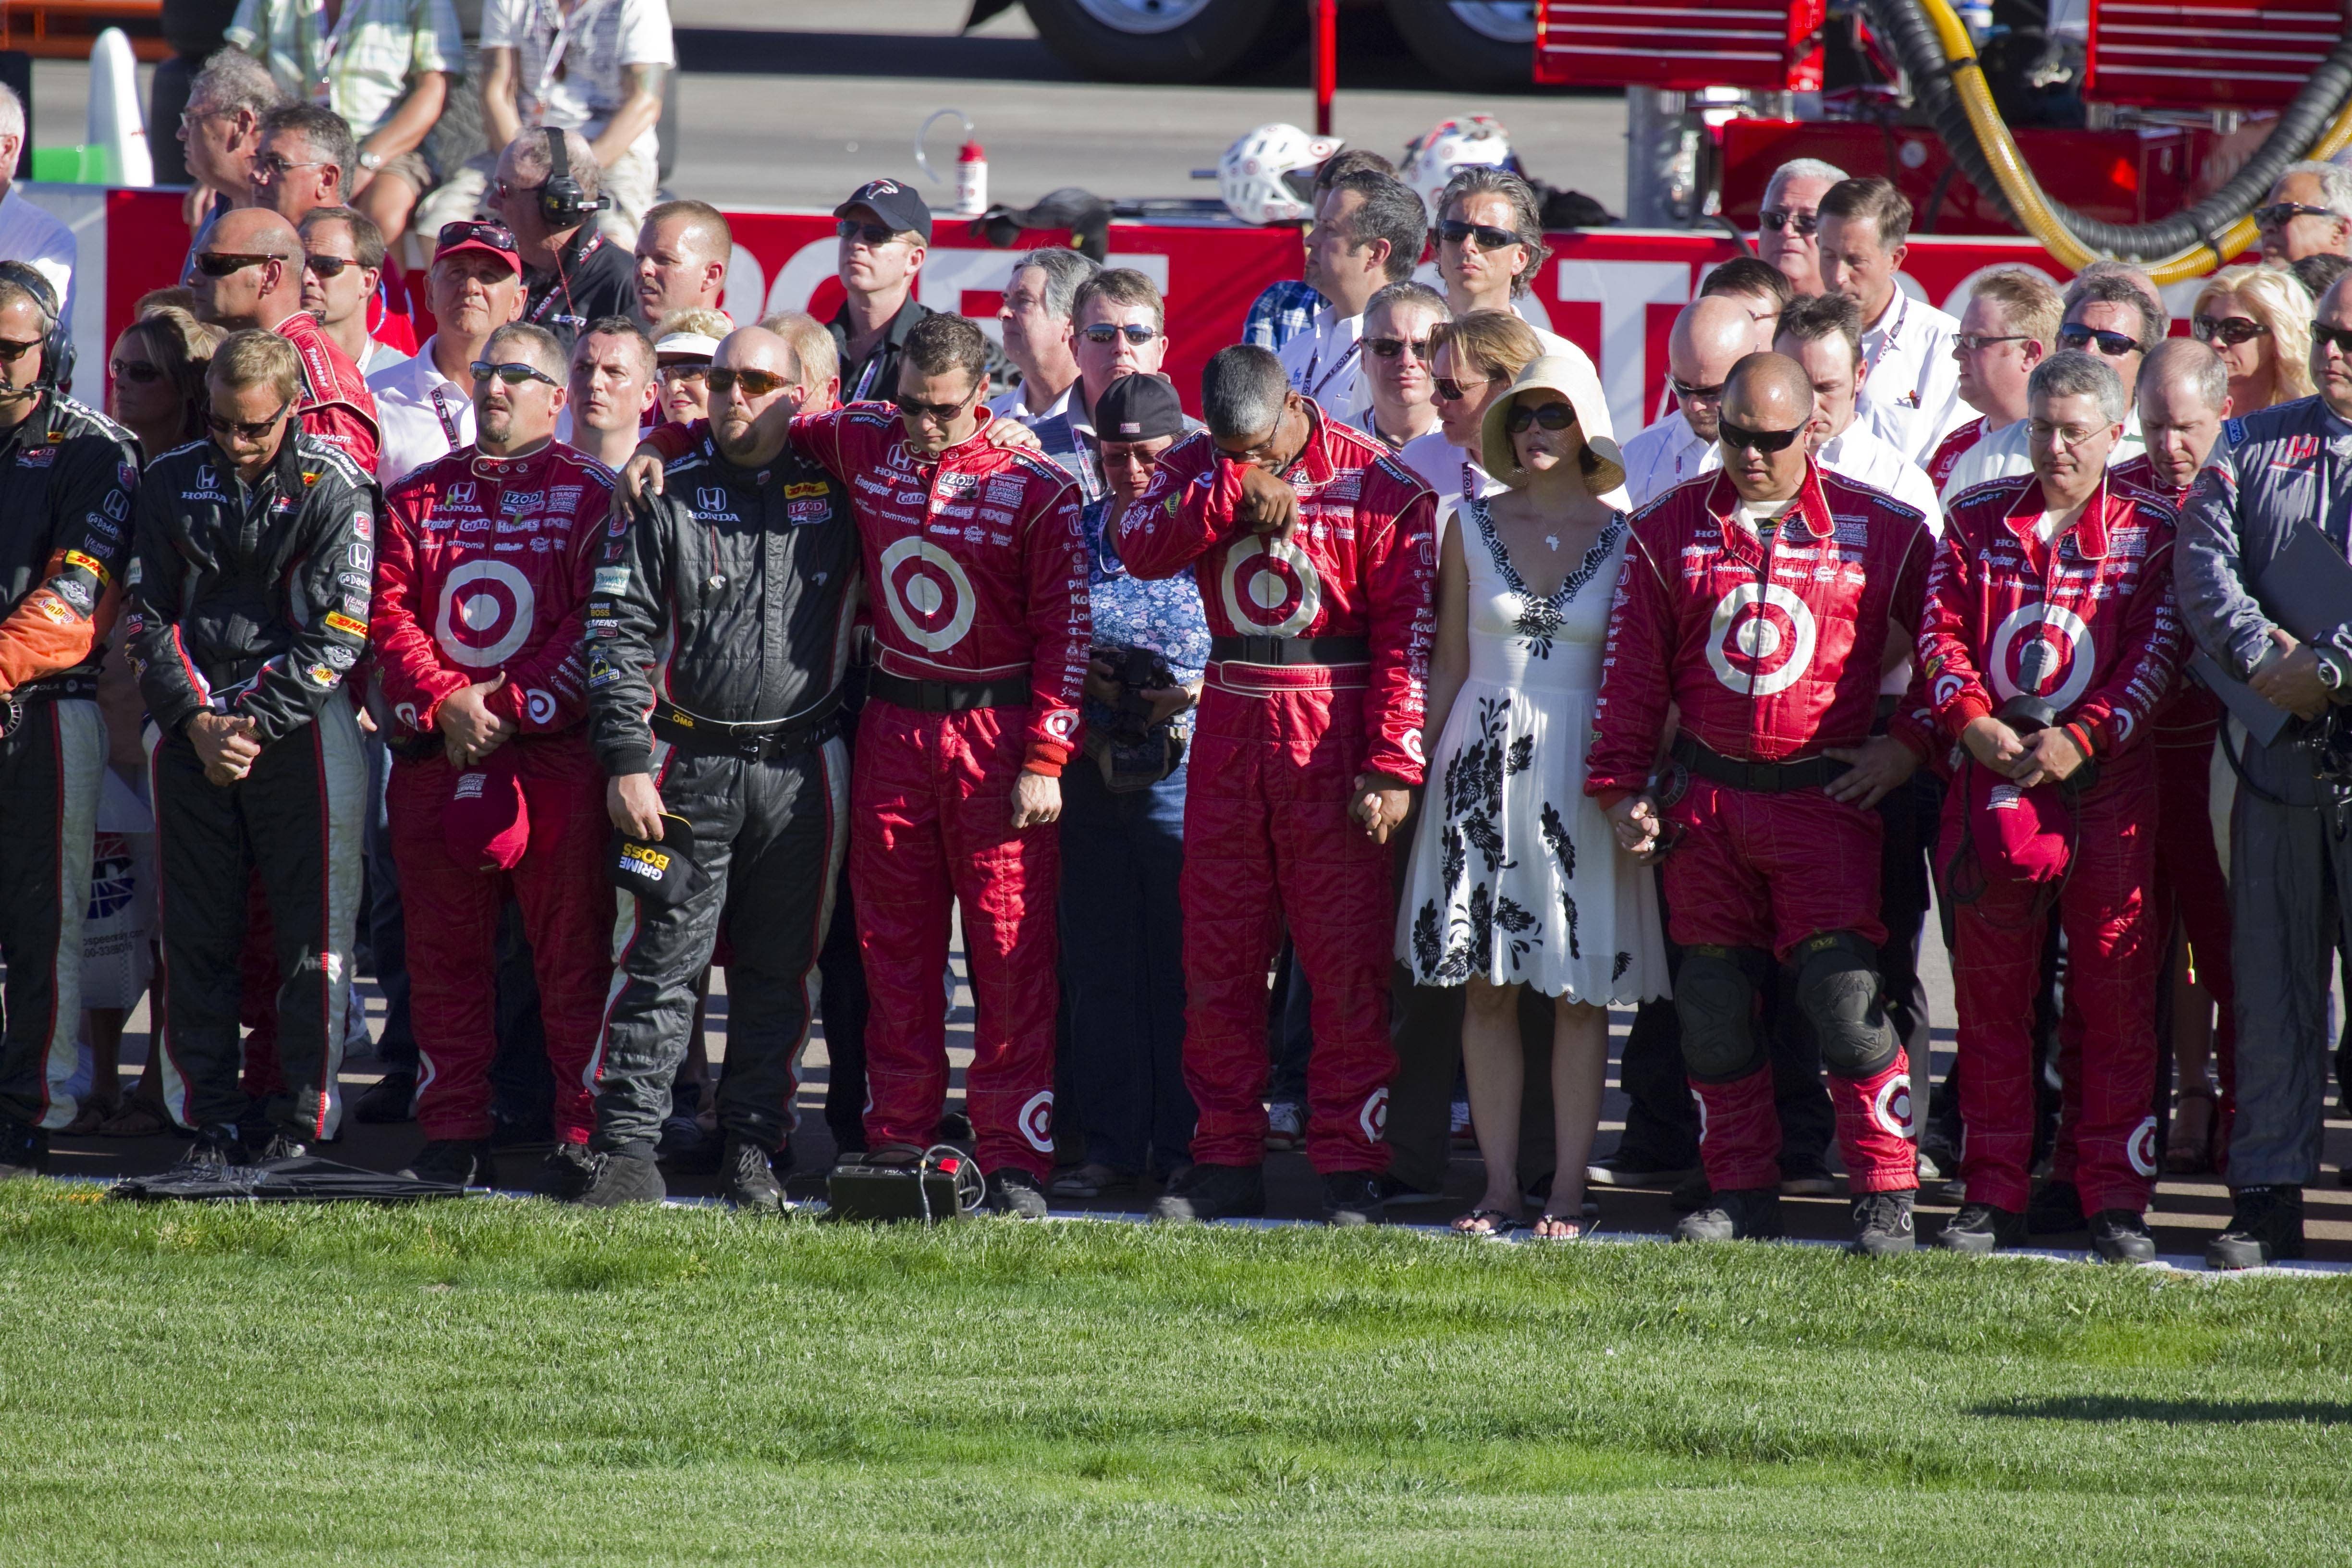 Indy 500 winner Wheldon dies after massive wreck